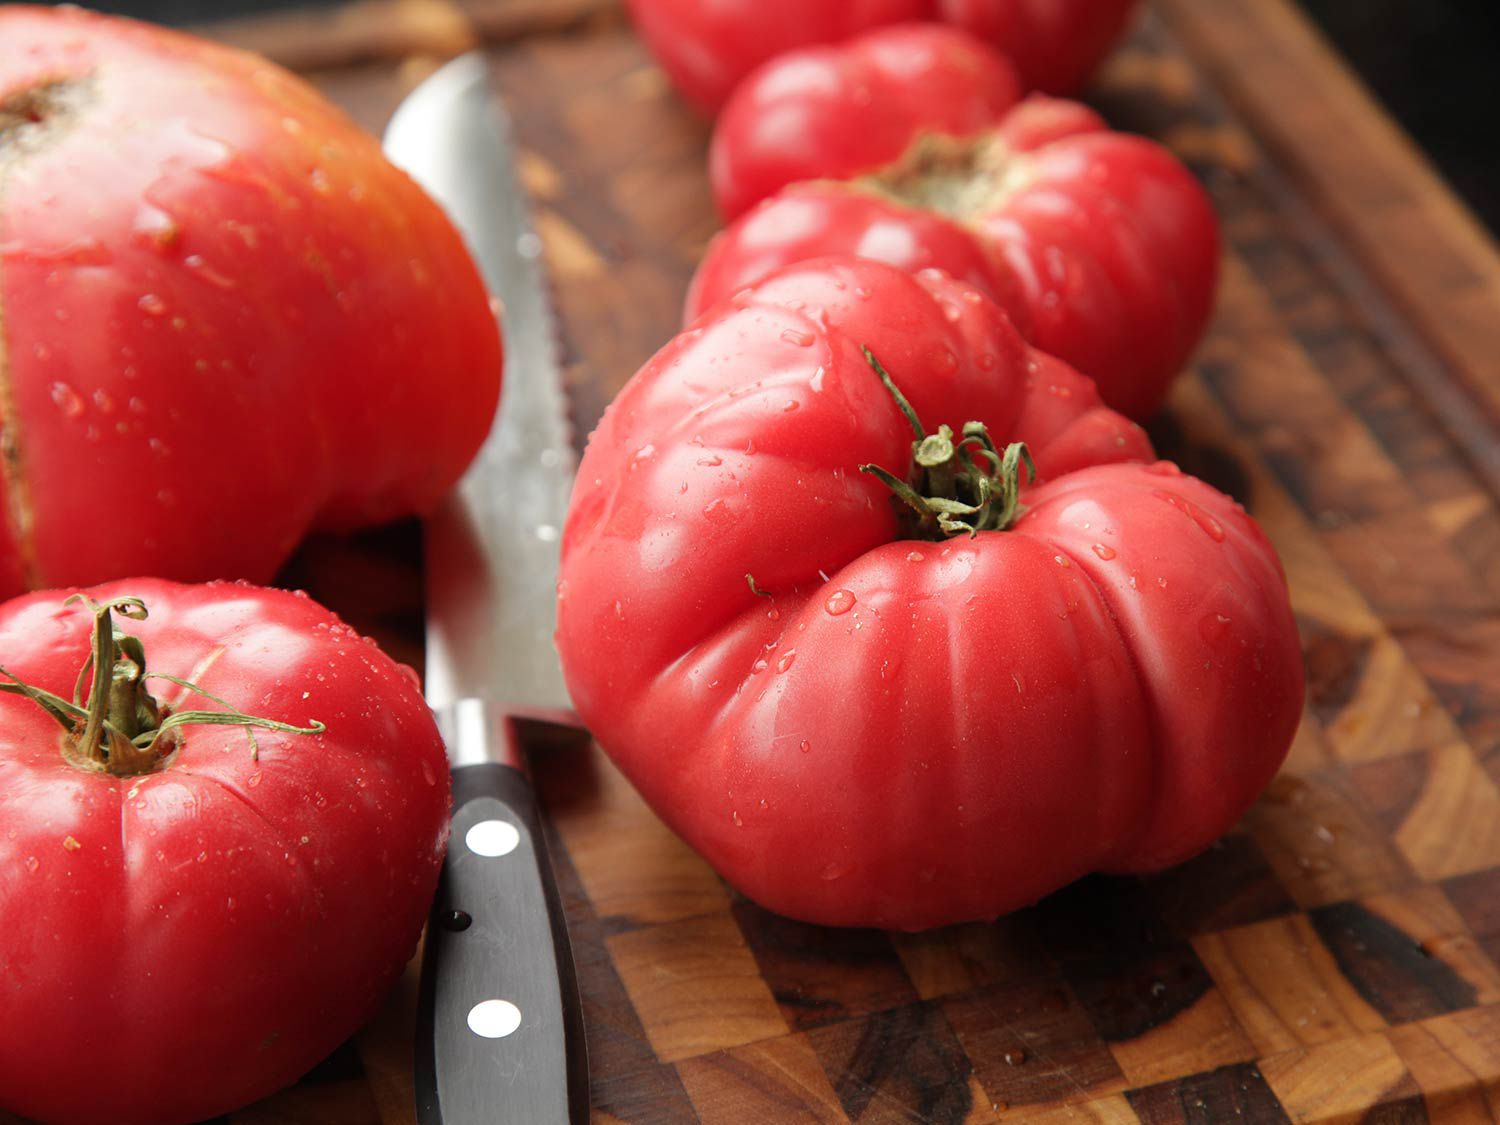 Red ripe tomatoes on a wooden cutting board, next to a knife